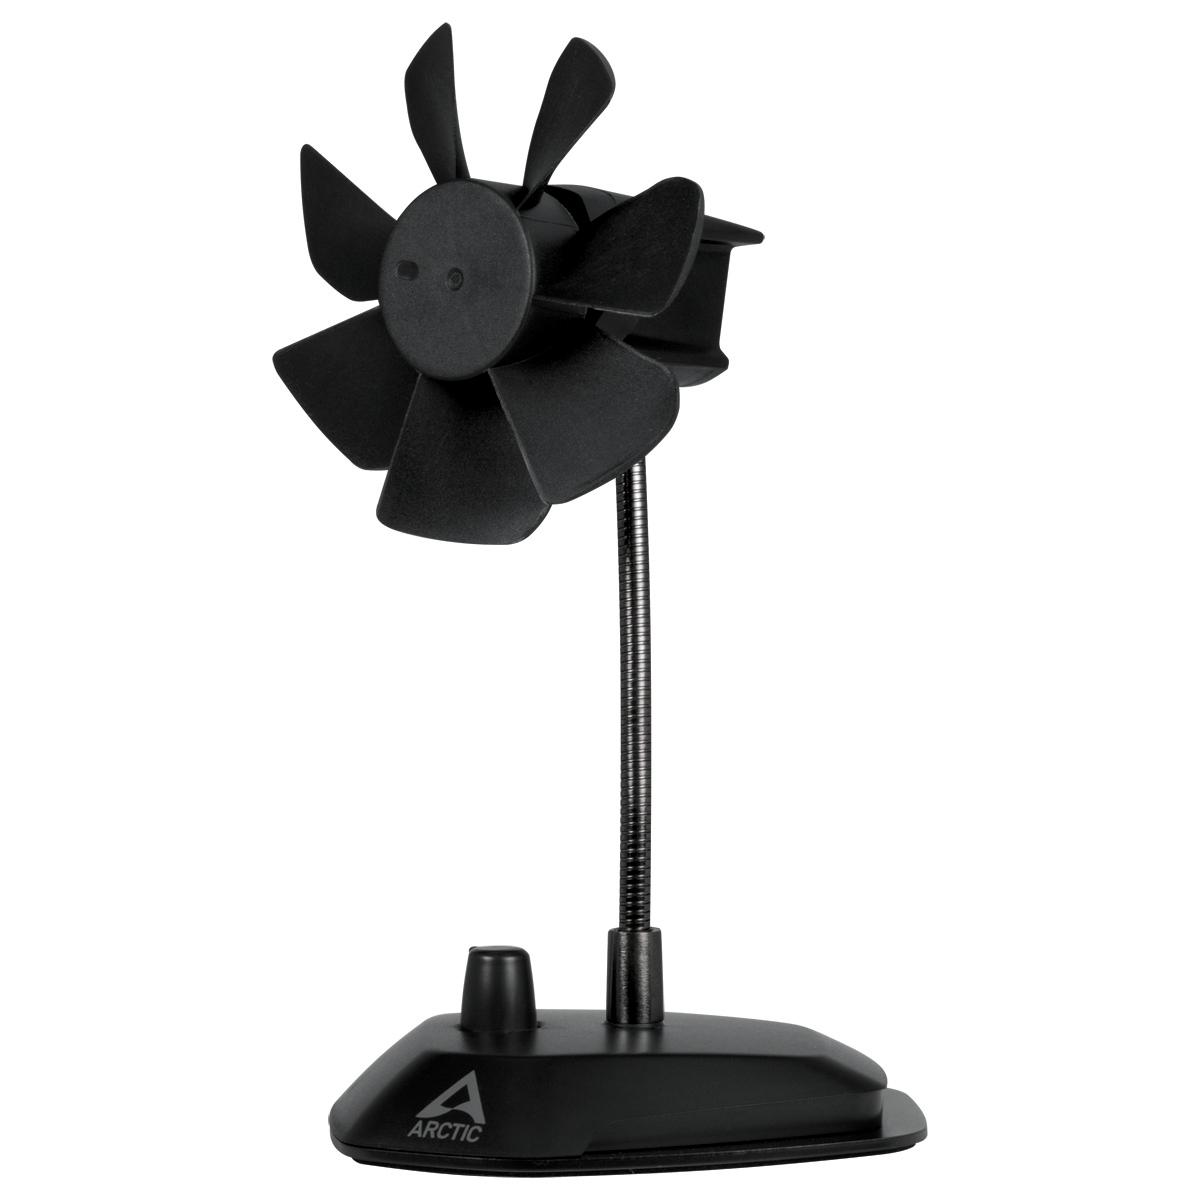 ABACO-BRZBK01-BL ARCTIC Breeze Color Edition BLACK - USB desktop fan